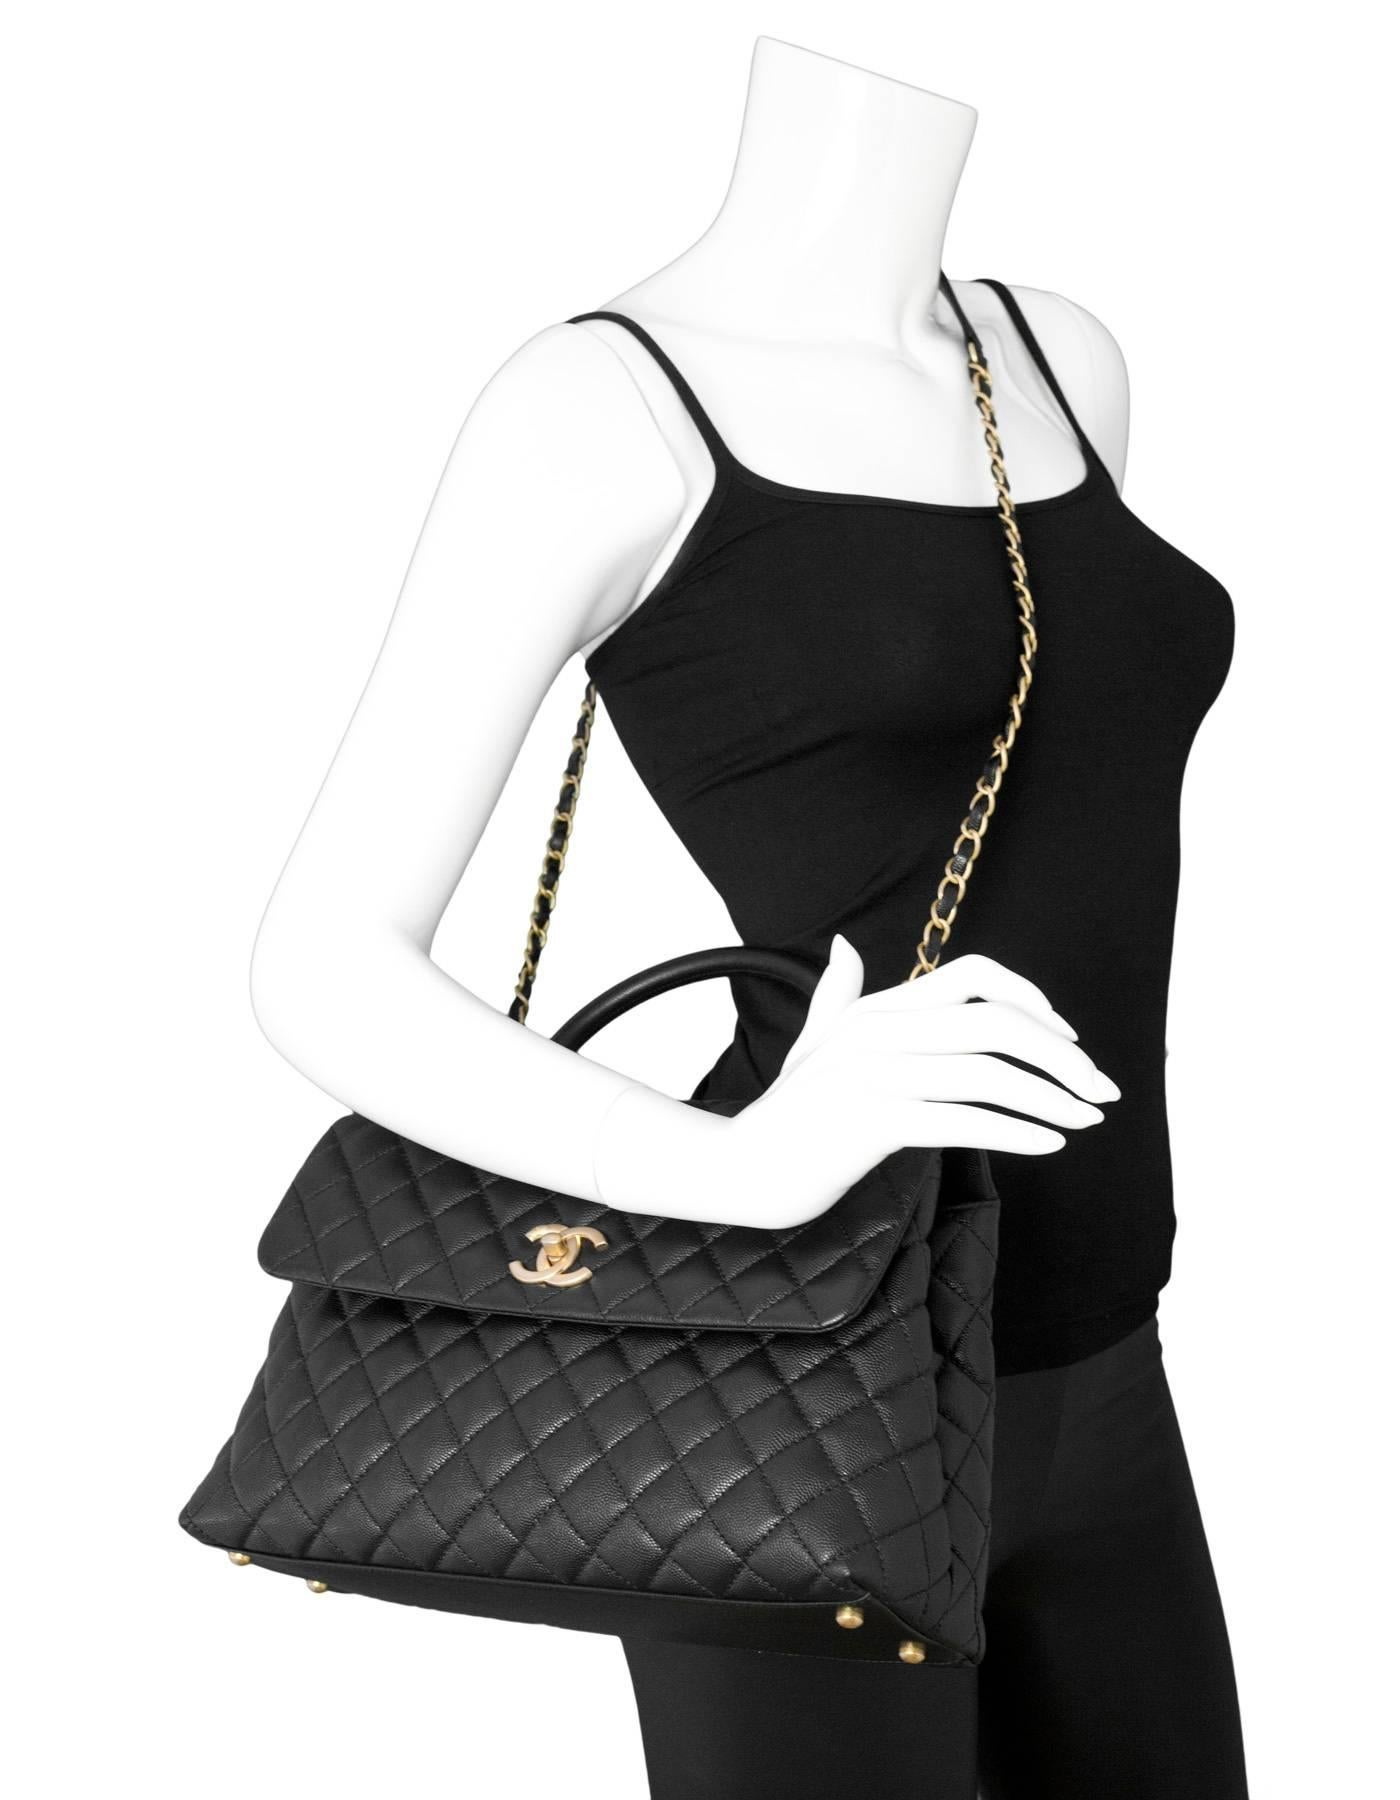 7b276dd43855 Chanel 2017 Black Quilted Caviar Leather Medium Coco Handle Flap Bag For  Sale at 1stdibs